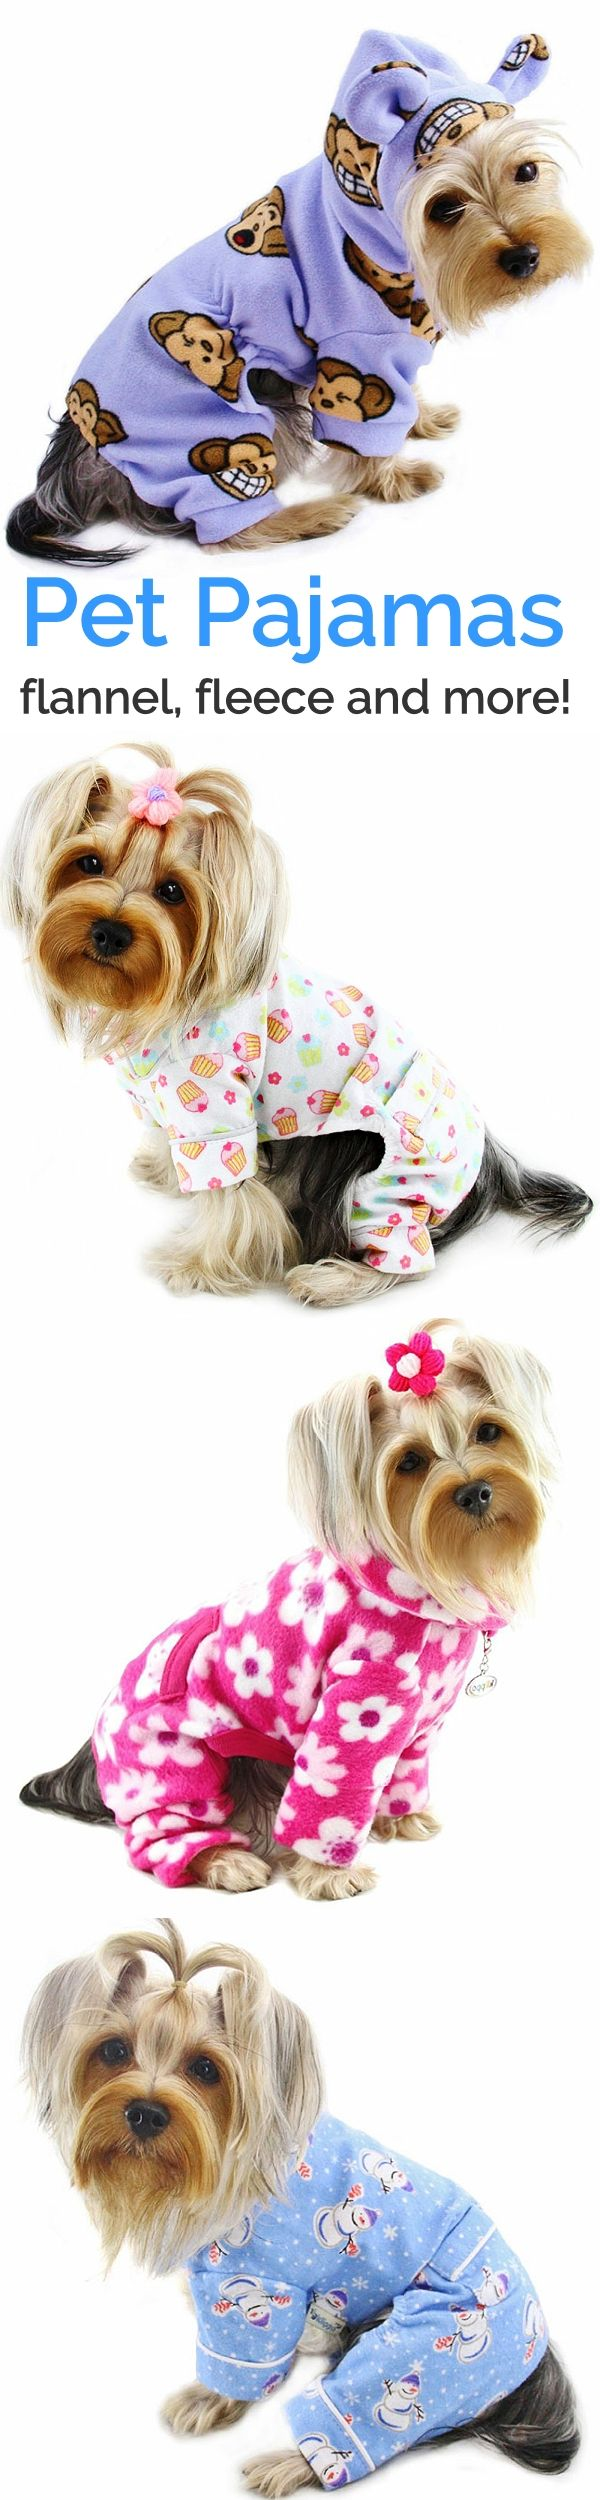 Pajamas for pets are both cute and functional and perfect for puppies, senior pets as well as hairless dogs and cats.